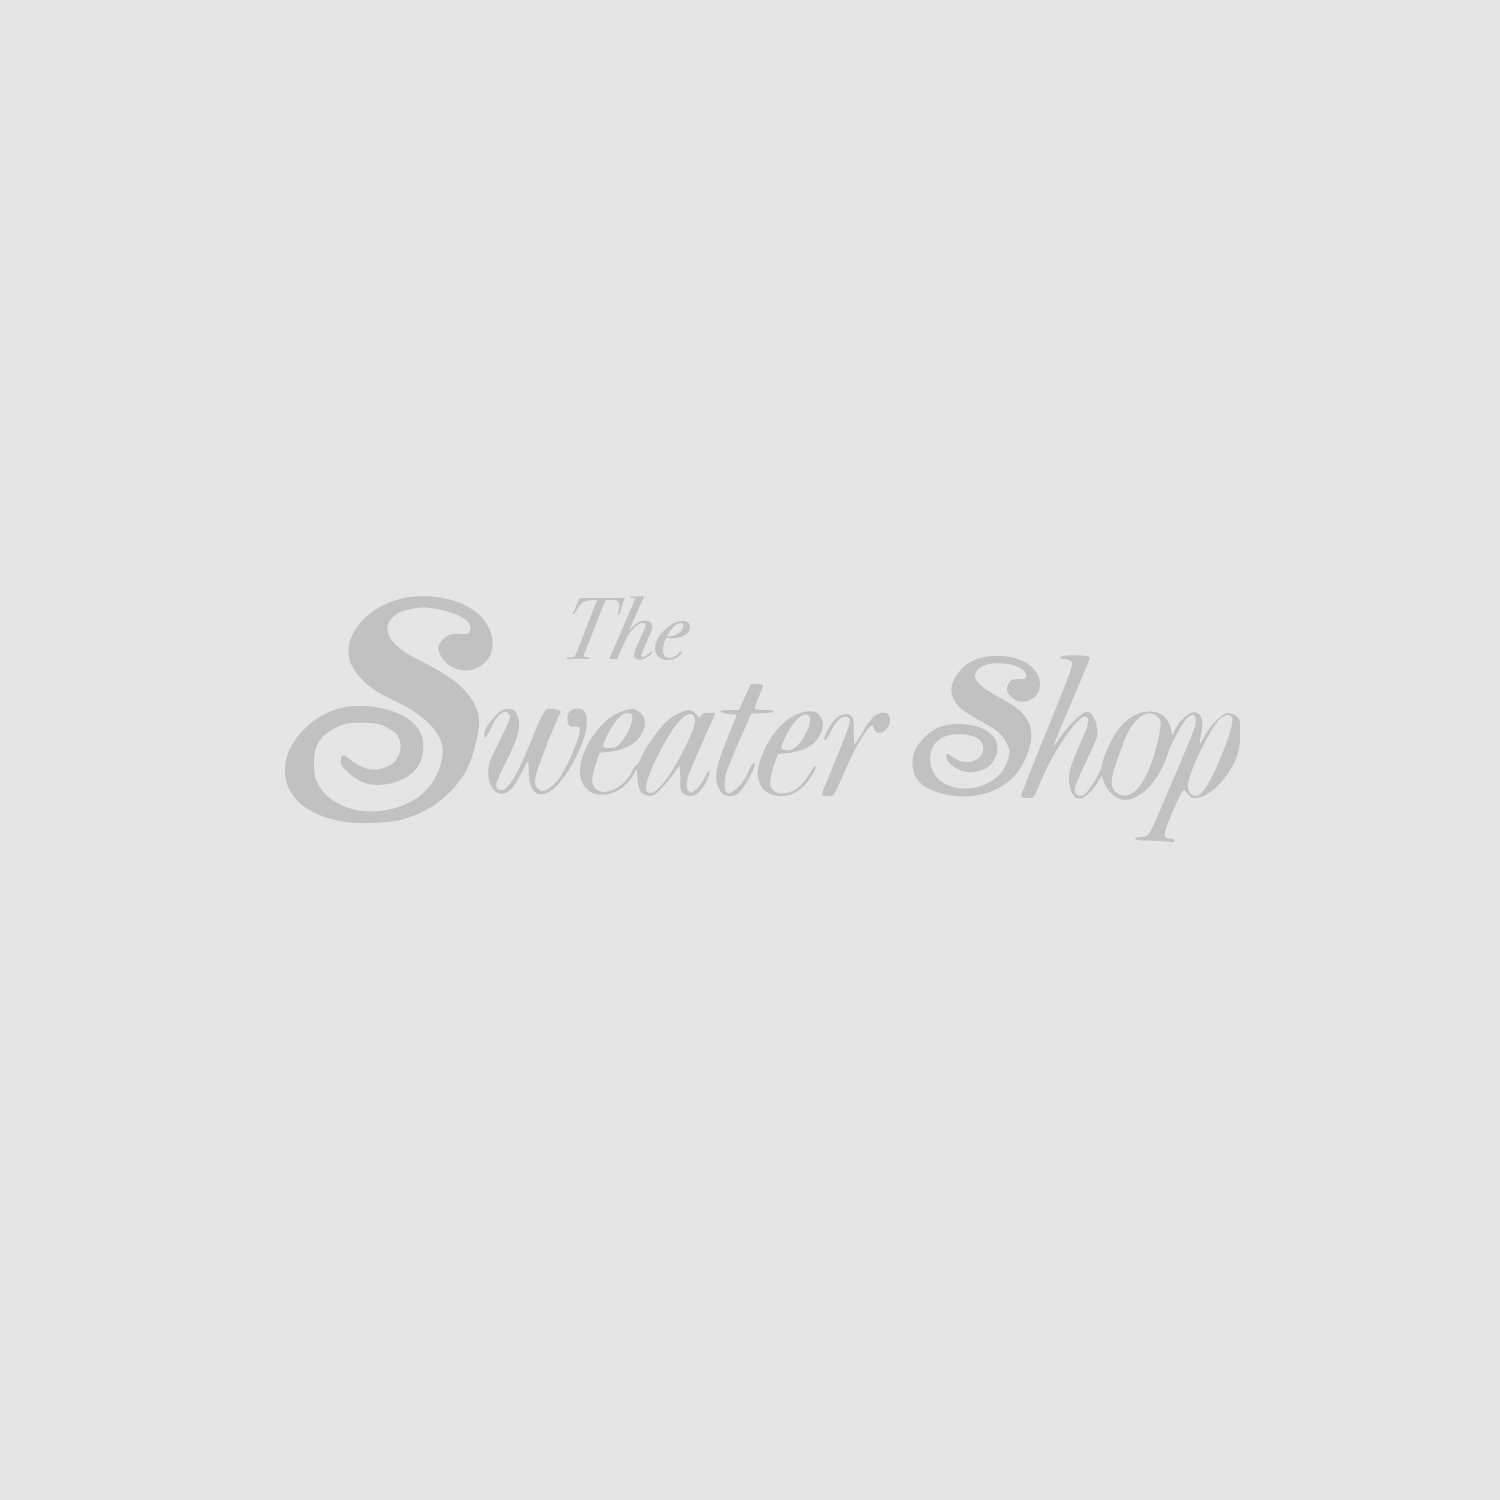 The Sweater Shop | The Sweater Shop, Ireland